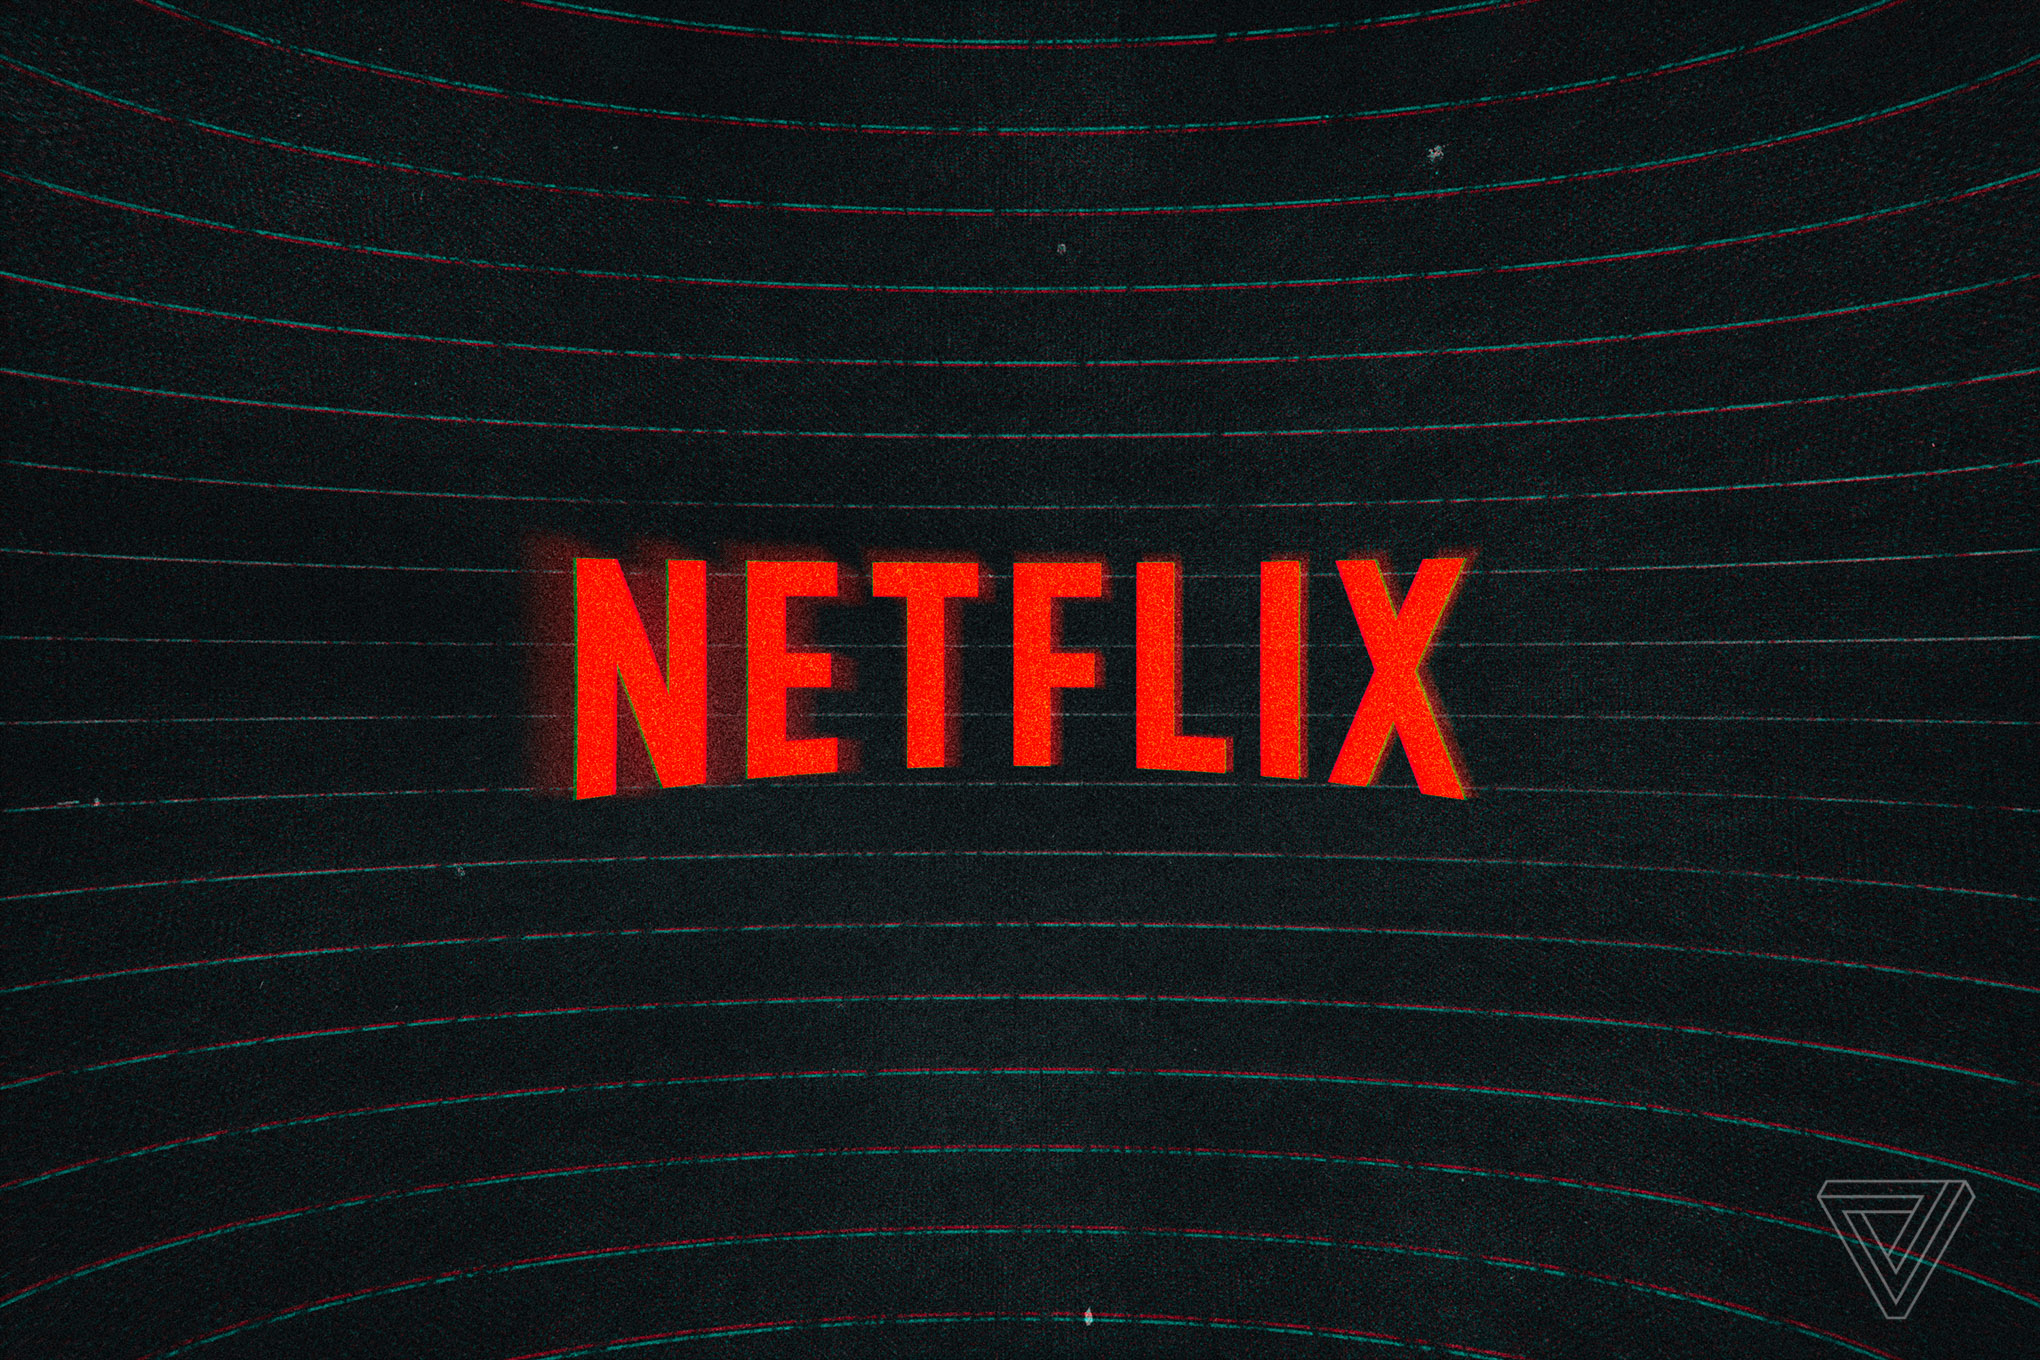 Netflix is getting into radio with a full-time comedy channel airing